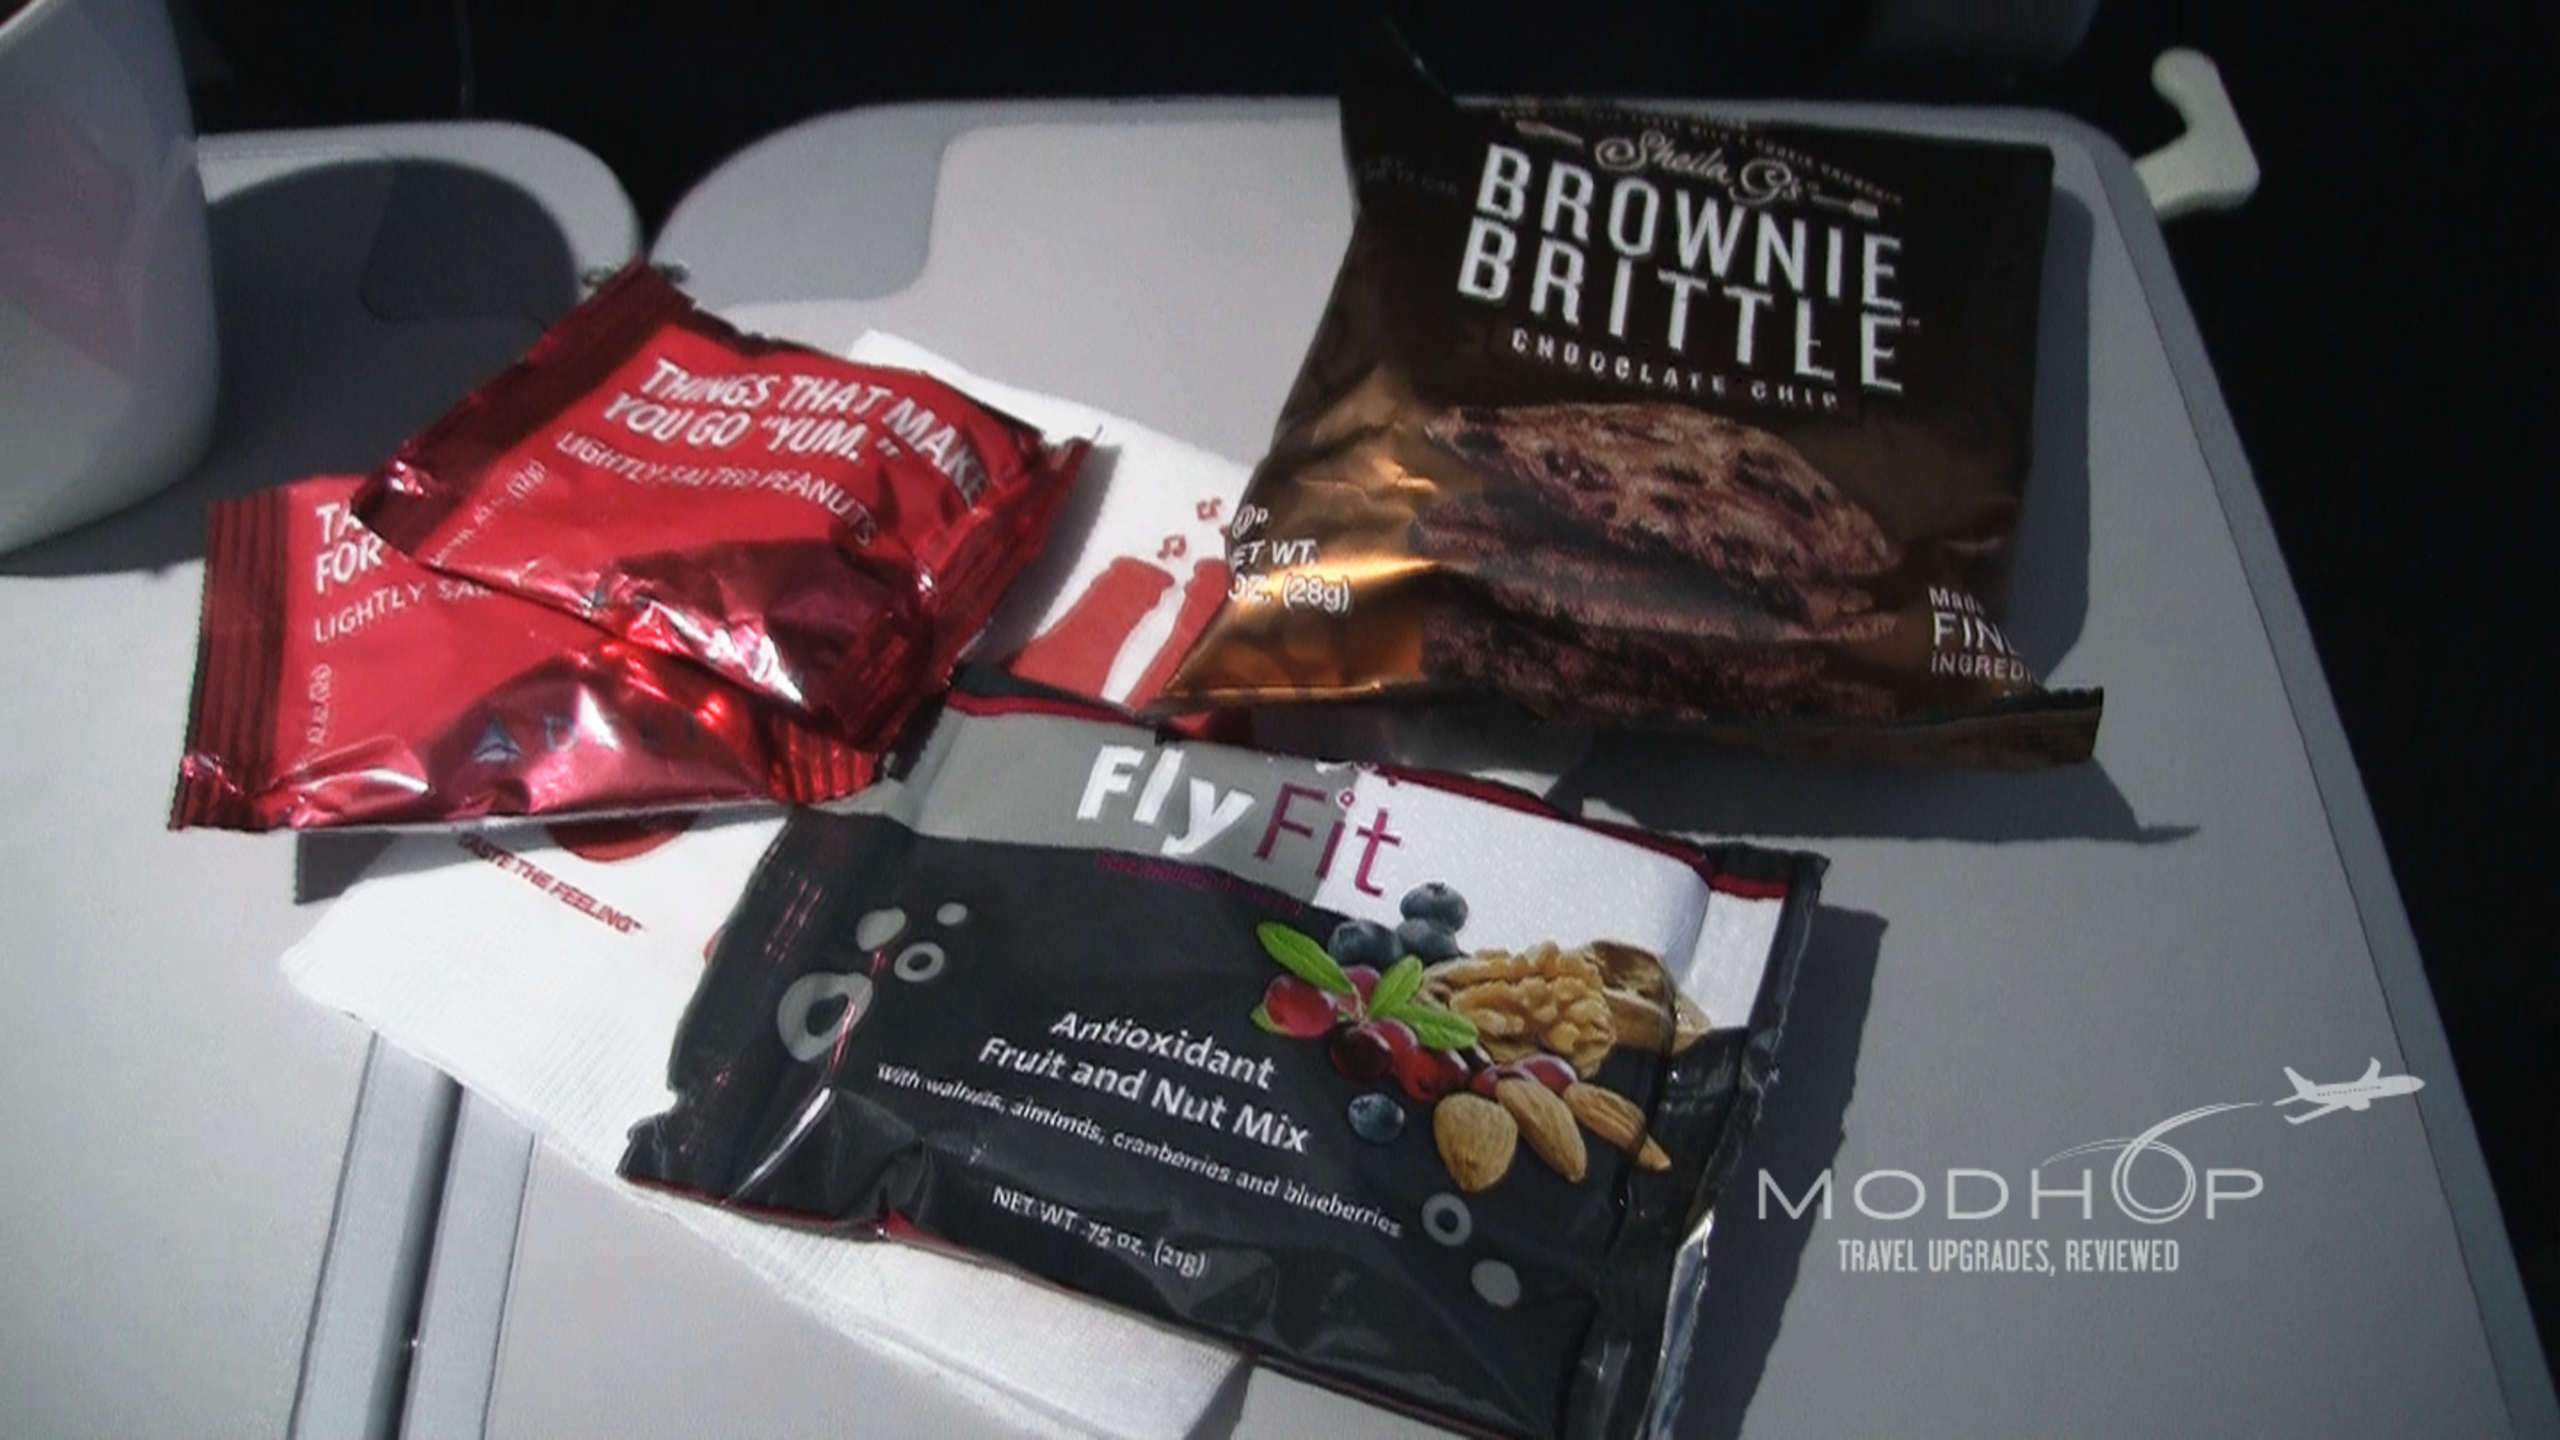 Delta A321 seating food options.